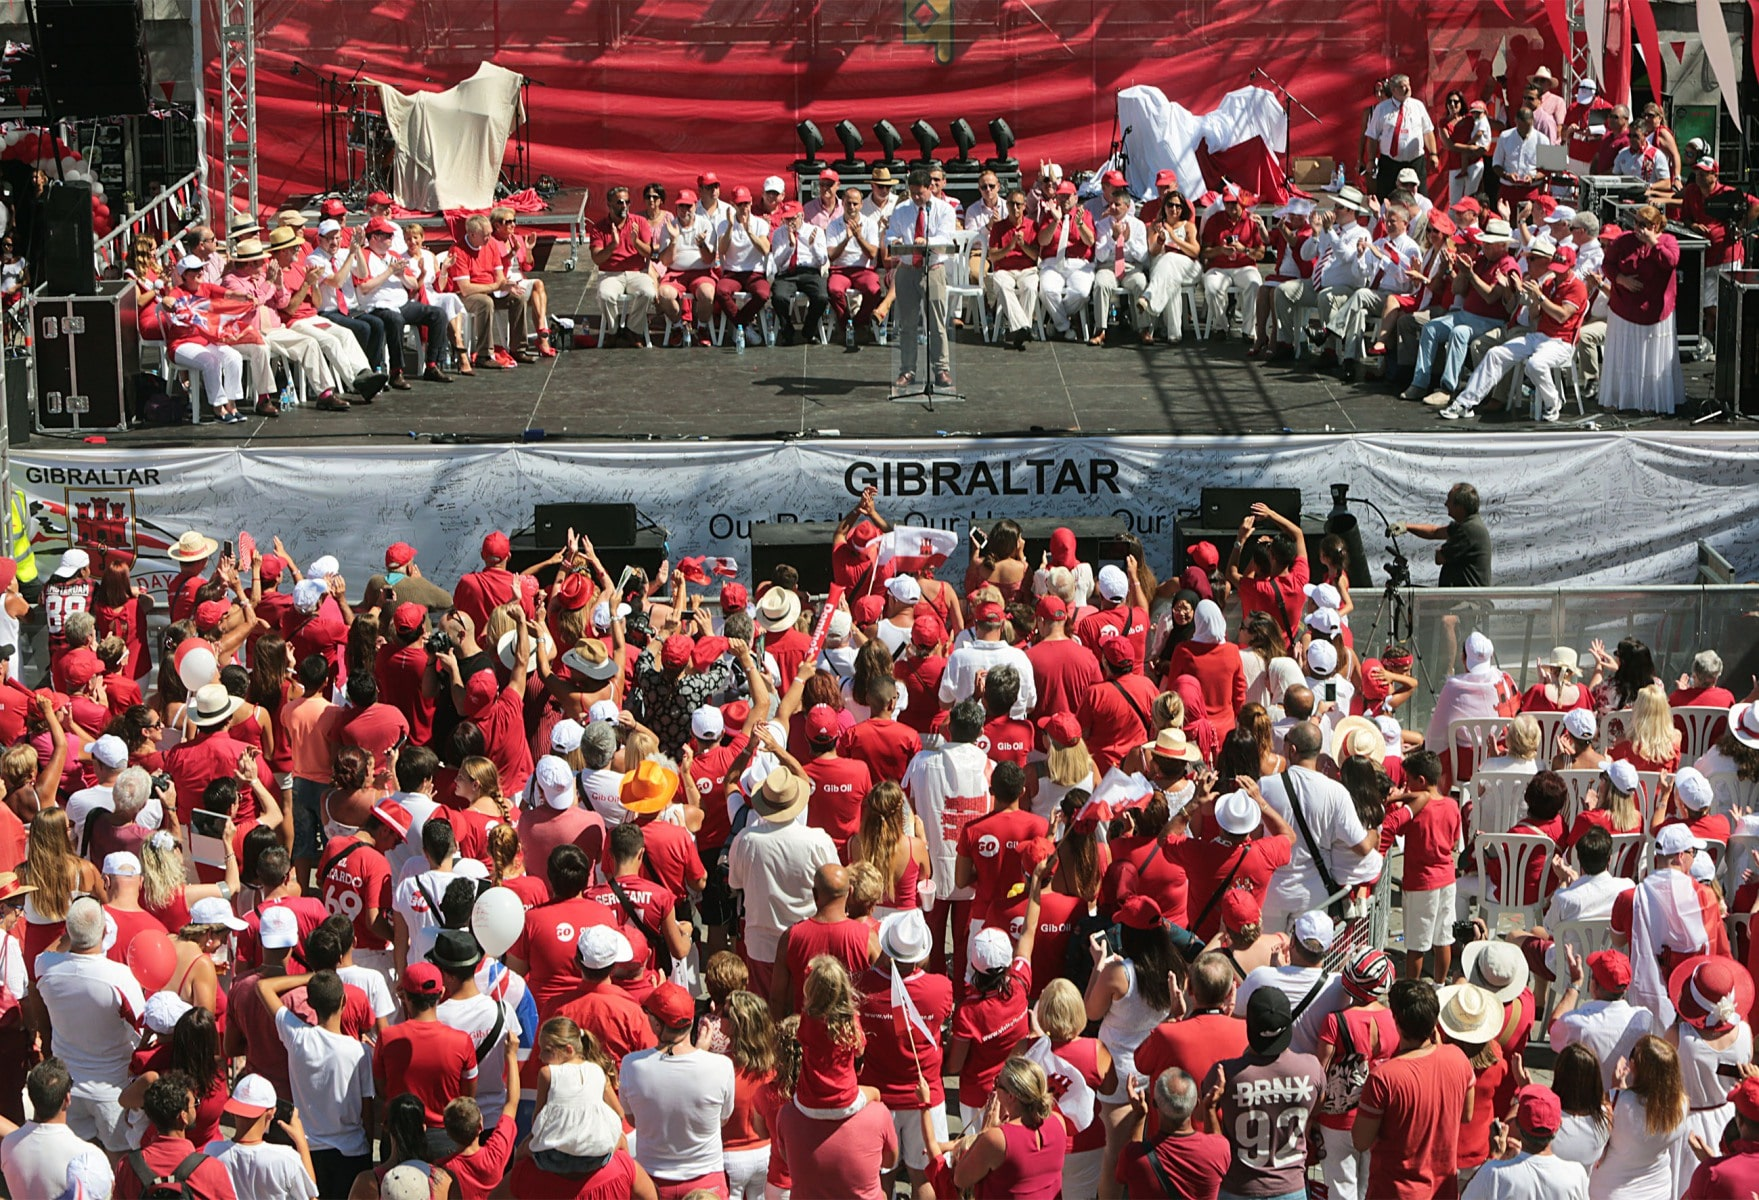 160910-national-day-gibraltar-2016-52_28981293423_o